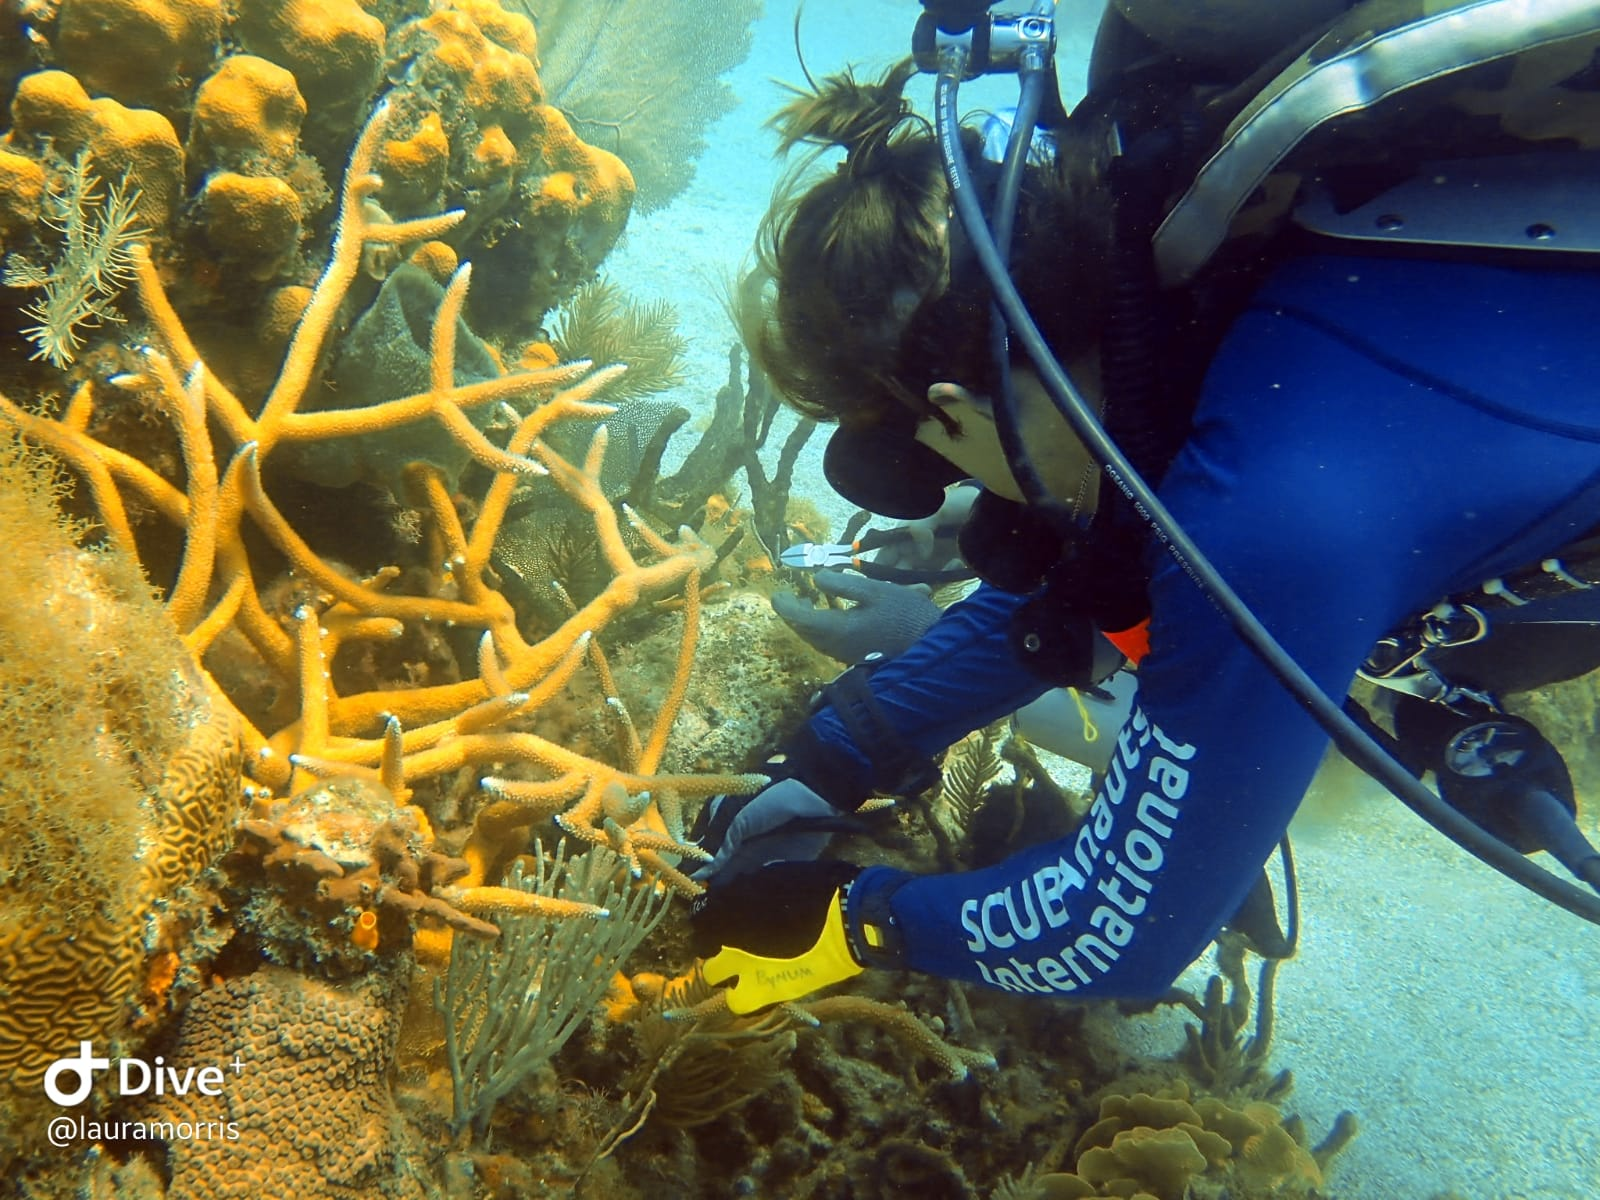 Marcus collects coral to be transplanted.